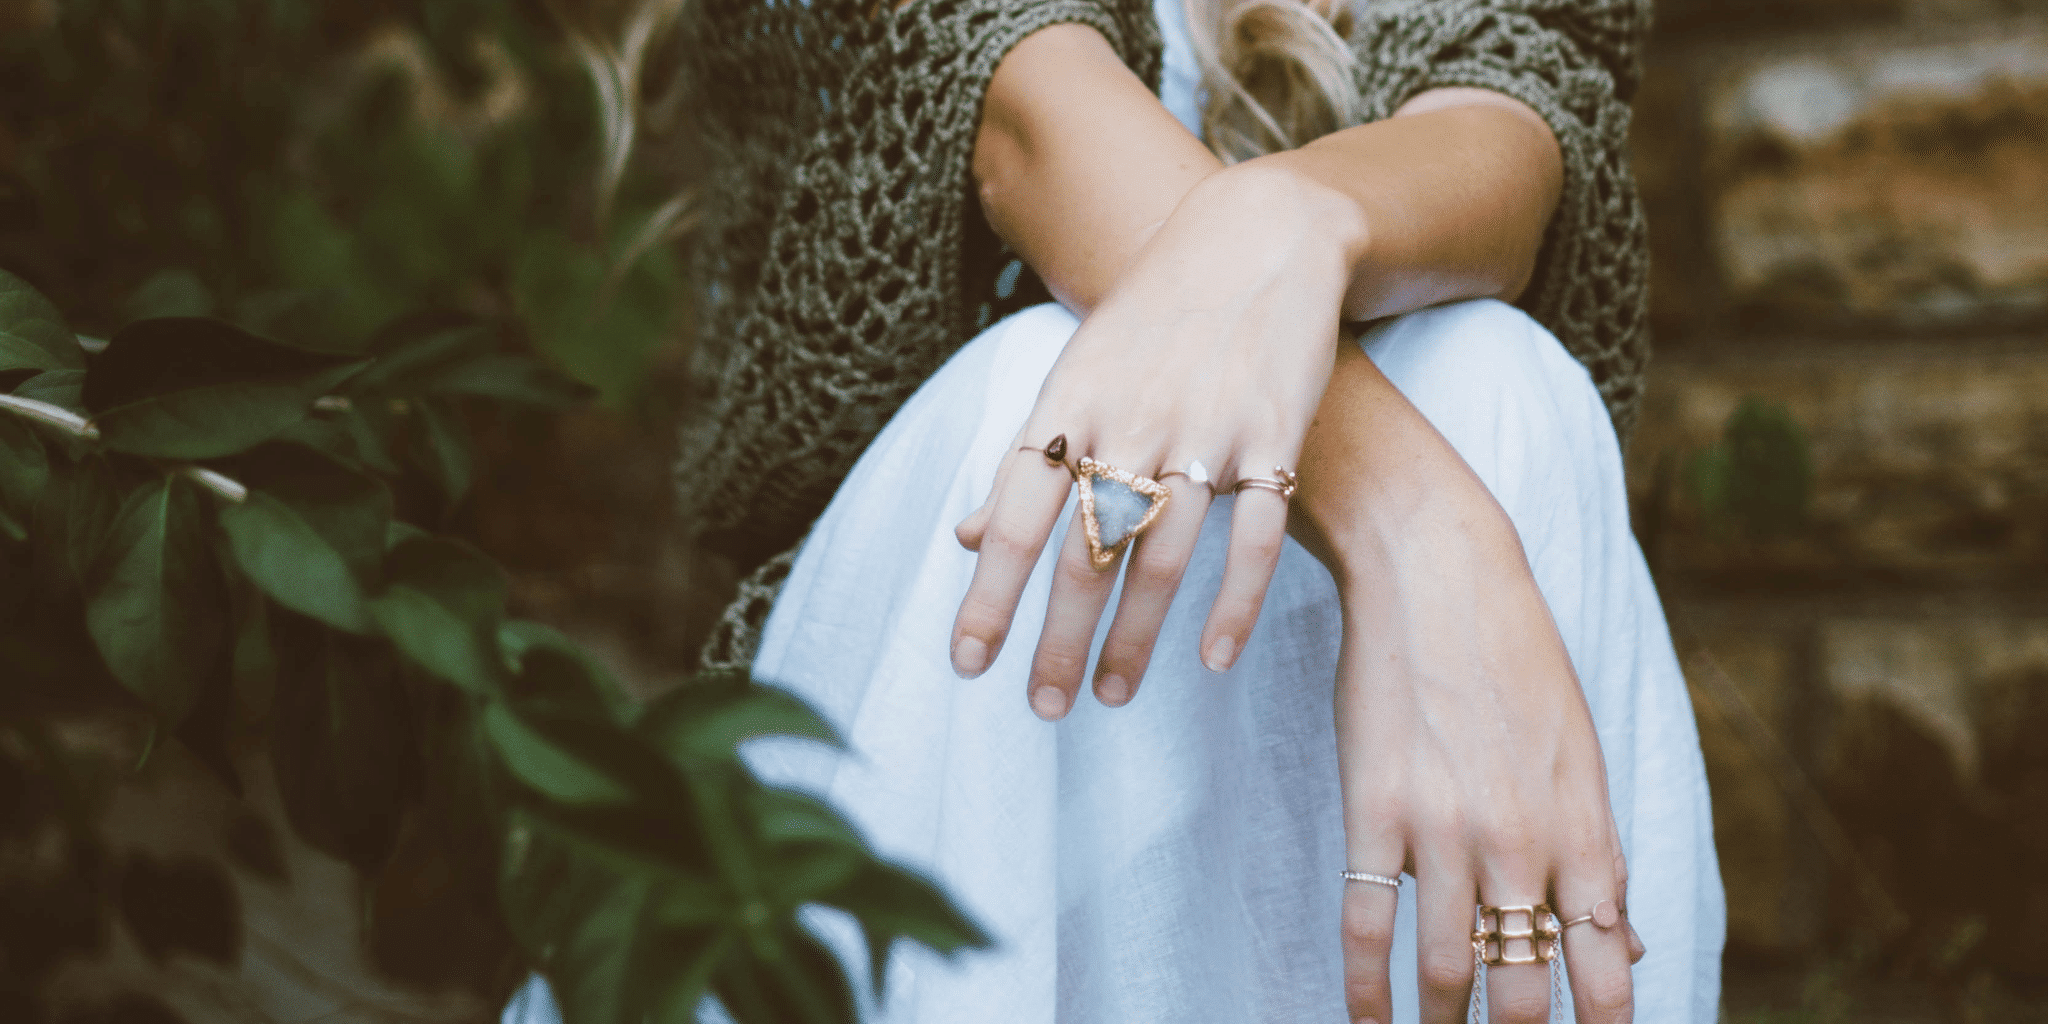 Do's and Don'ts of Building Your Jewellery Collection